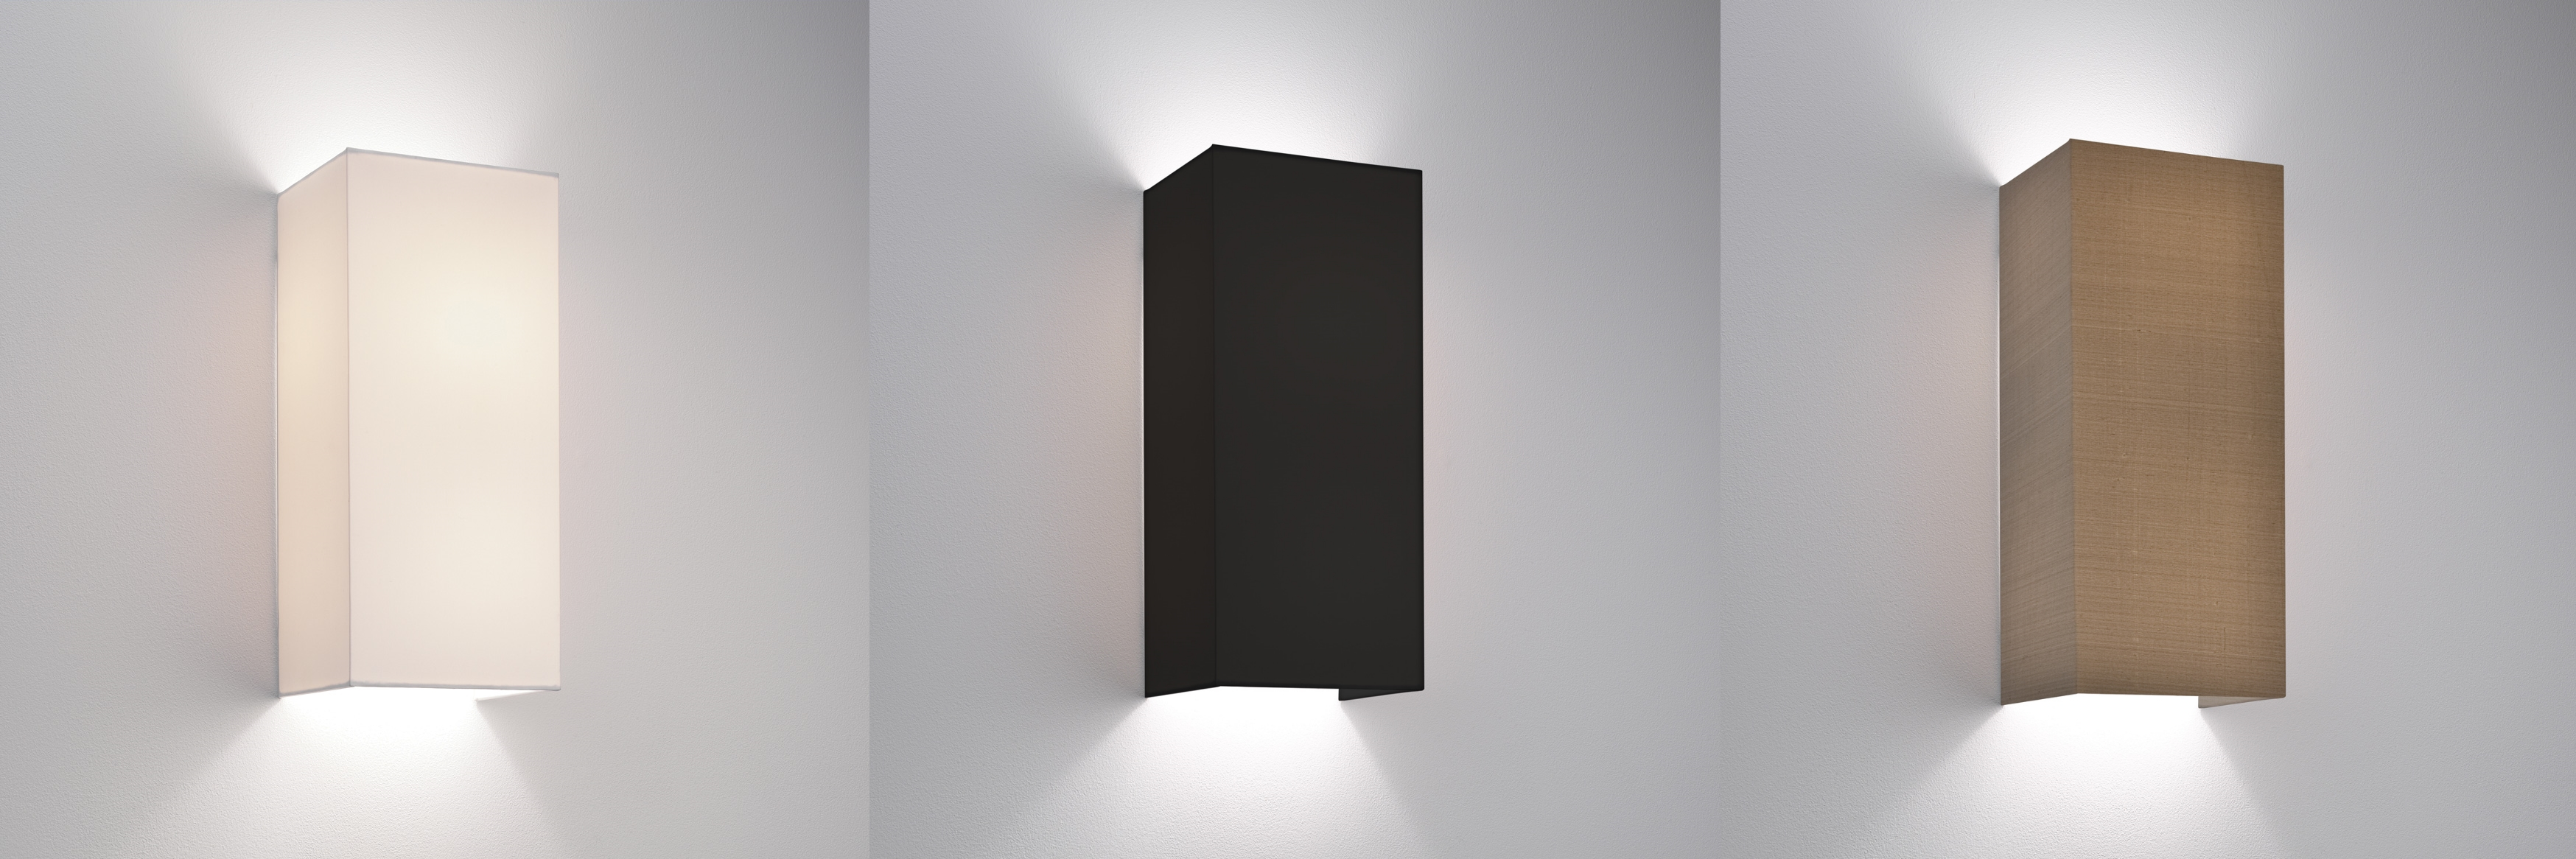 Details about Astro Chuo 380 fabric wall light shade 2 x 60W E27 white